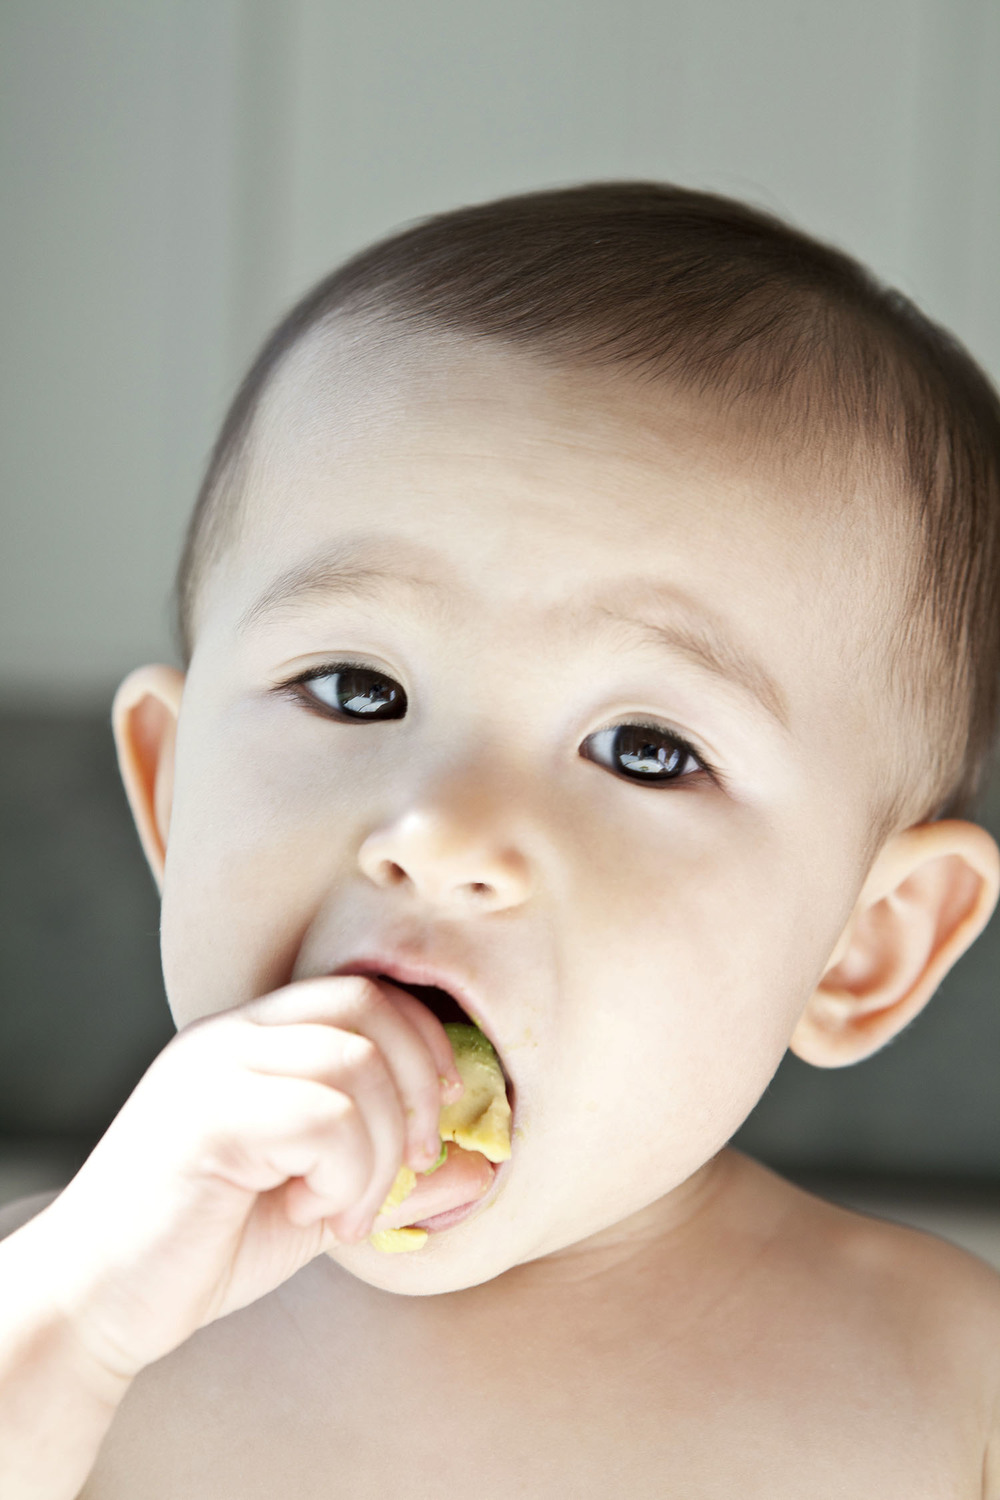 lifestyle-editorial-children-washington-dc-malek-naz-photography-contempo-baby-avocado.jpg